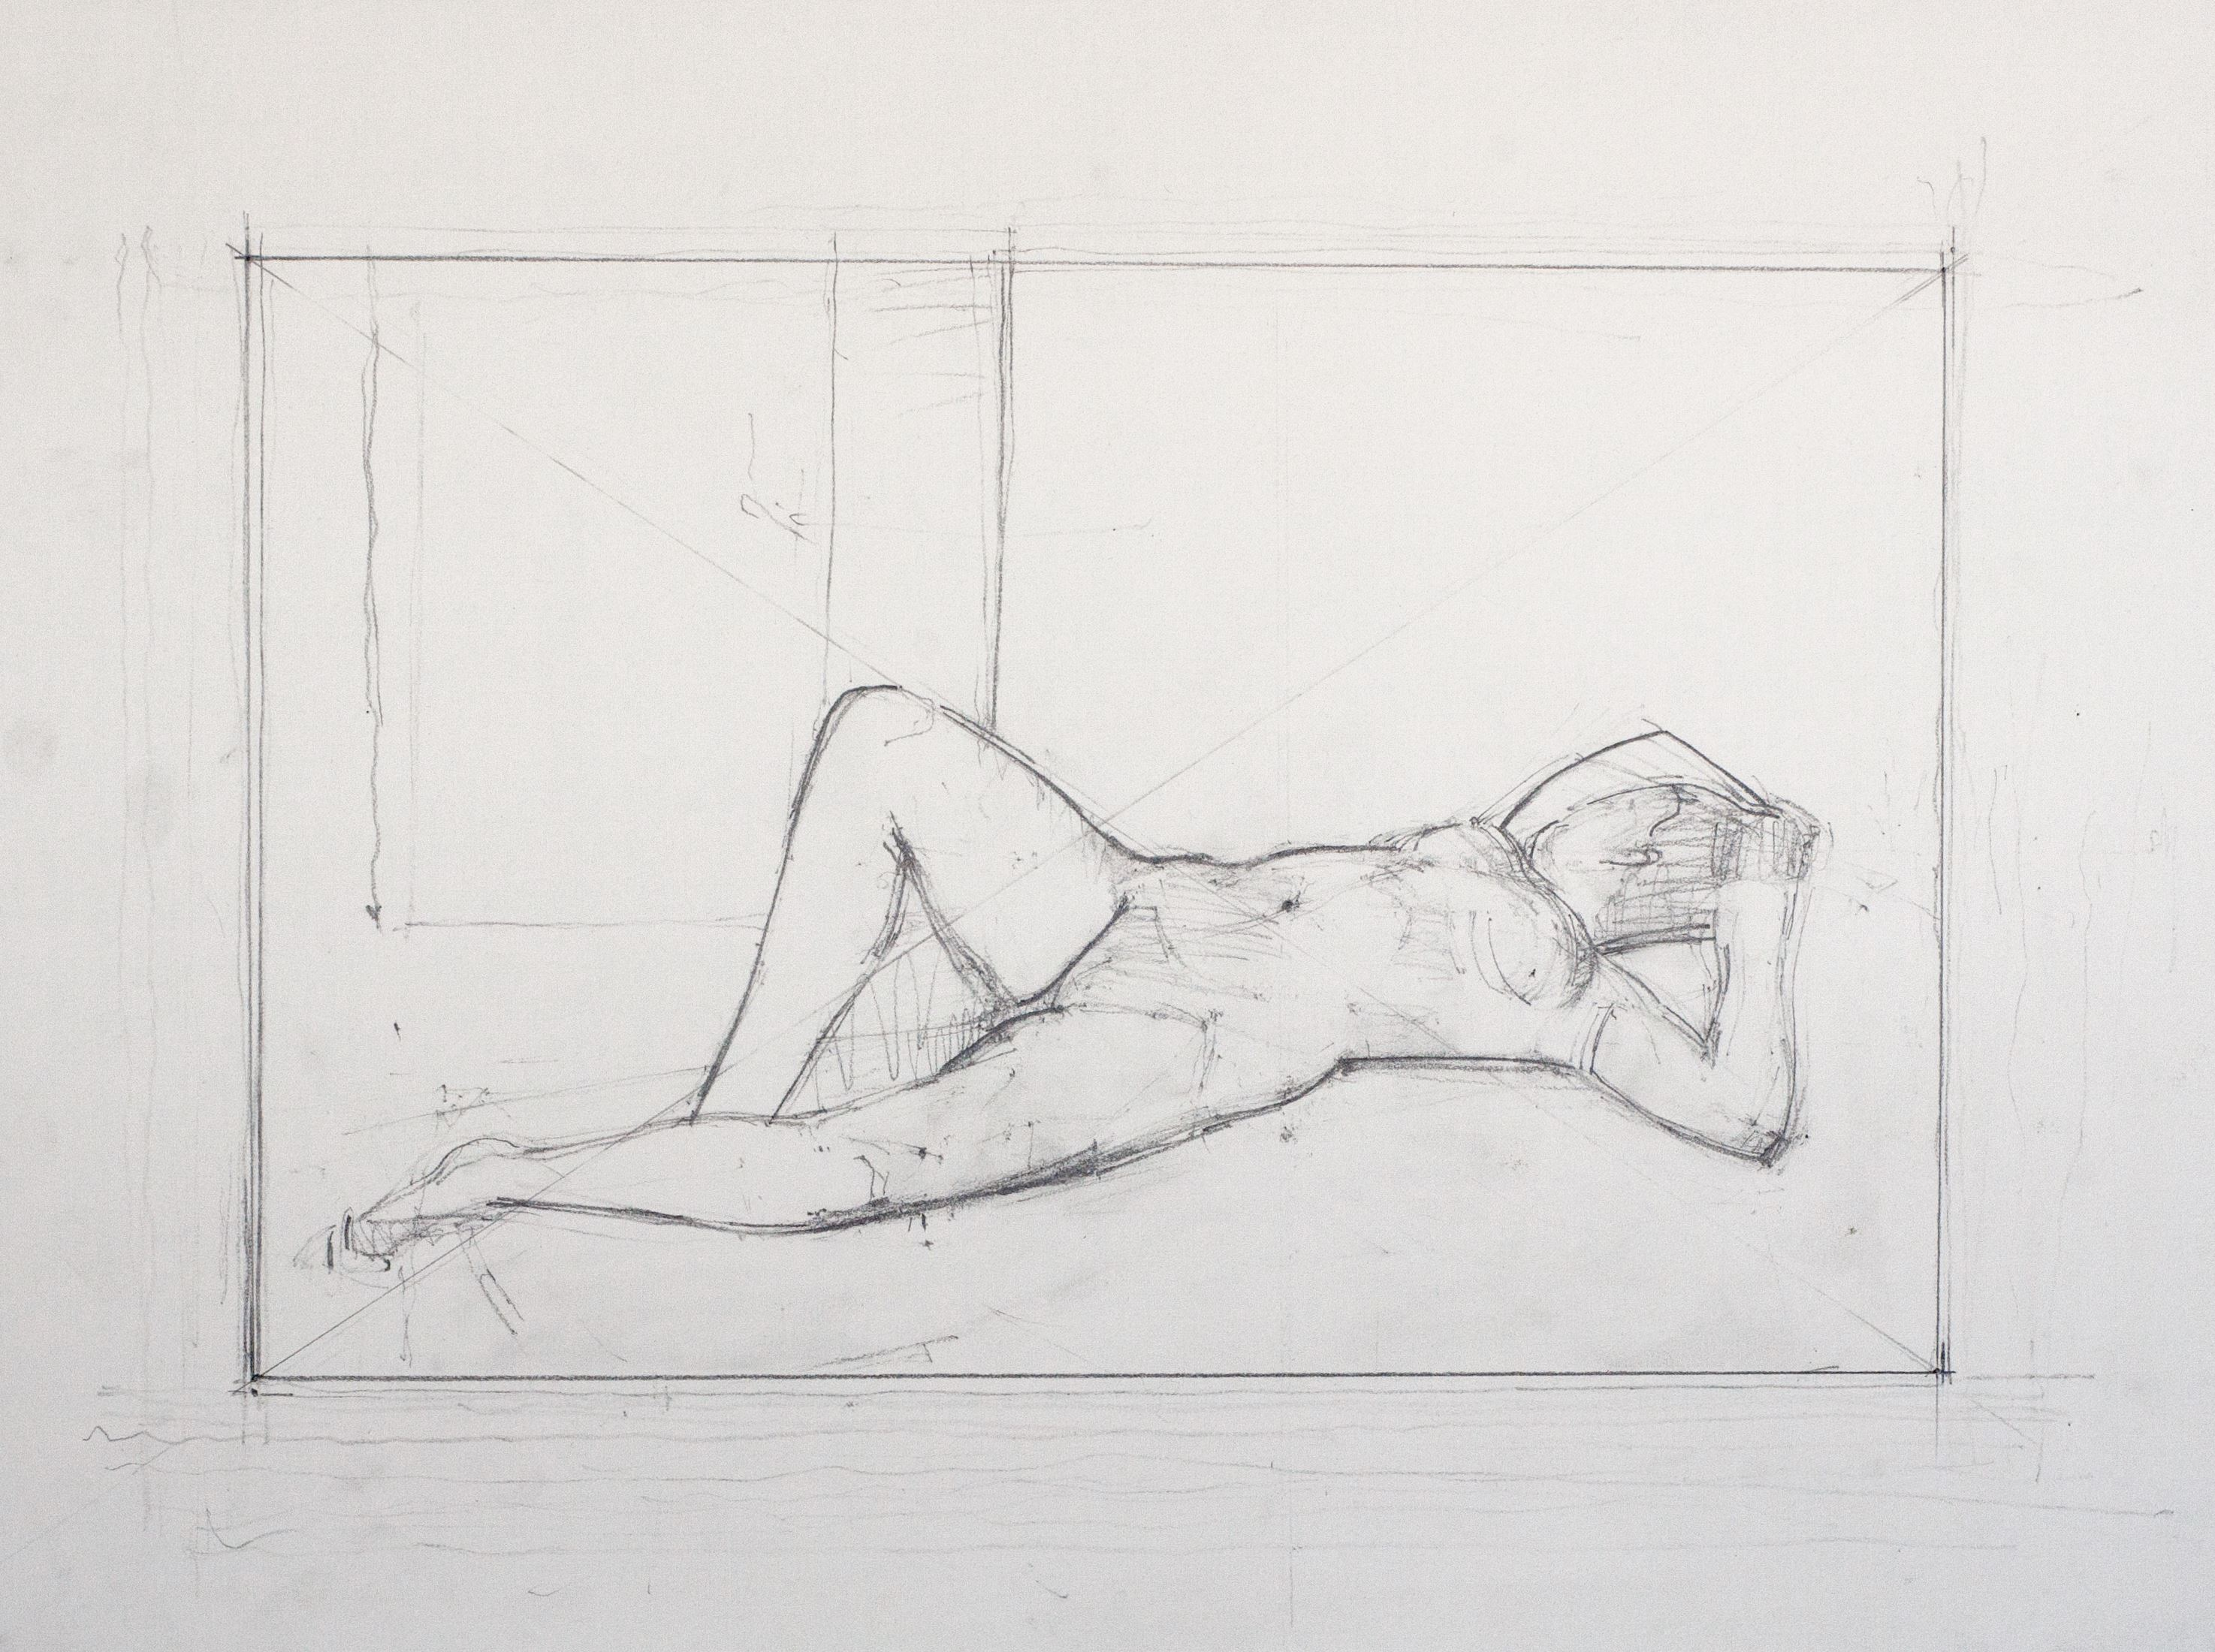 Reclining Diagonal, Raised Leg, 2011